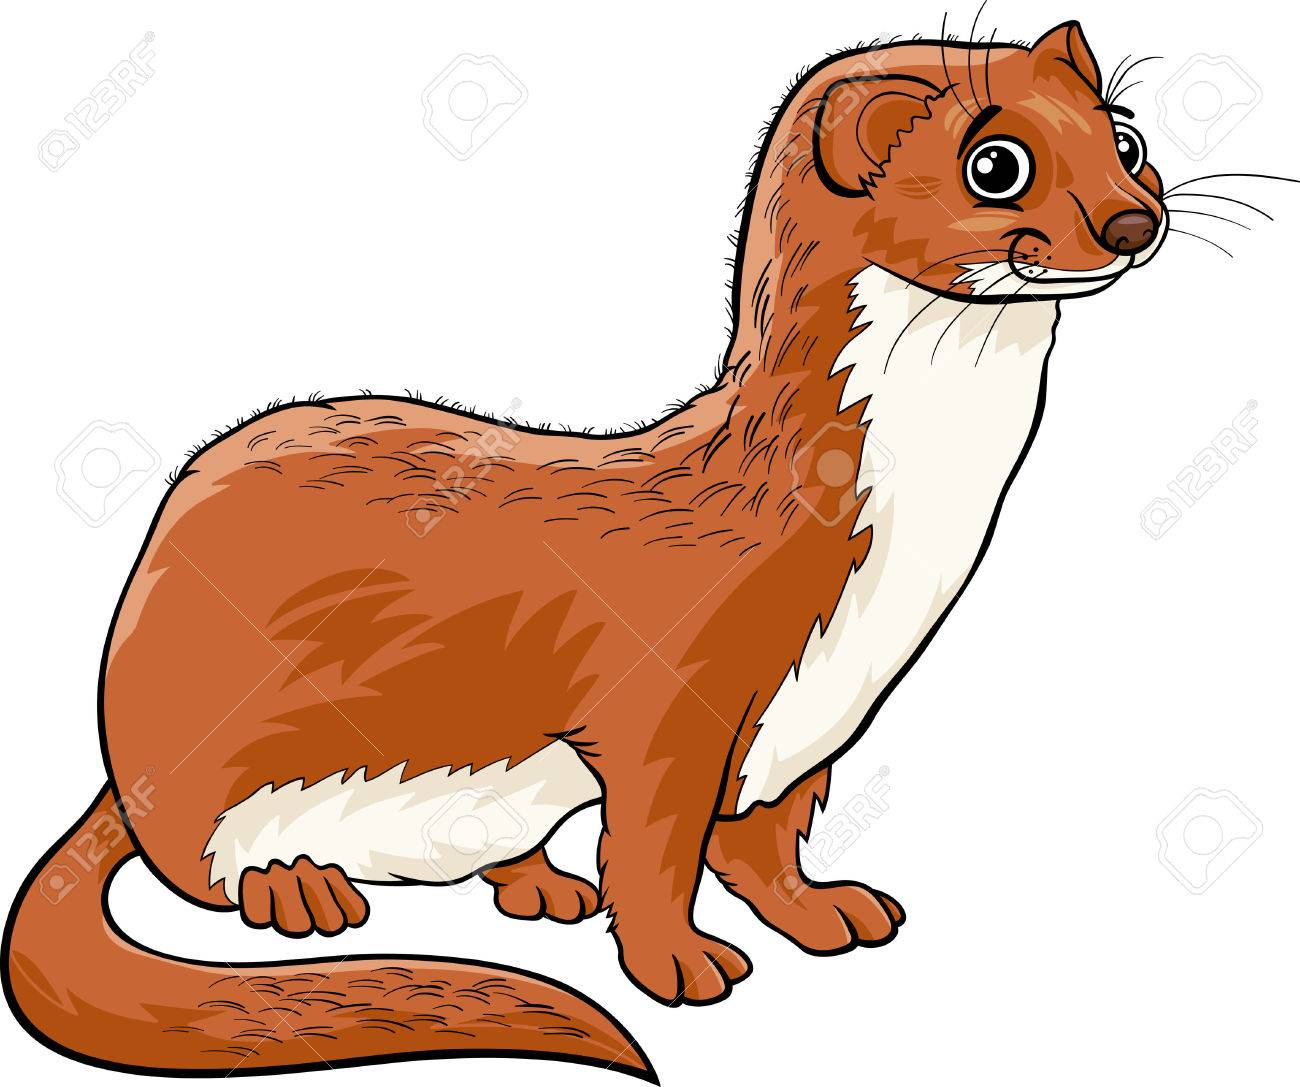 cartoon illustration of cute weasel animal royalty free cliparts rh 123rf com